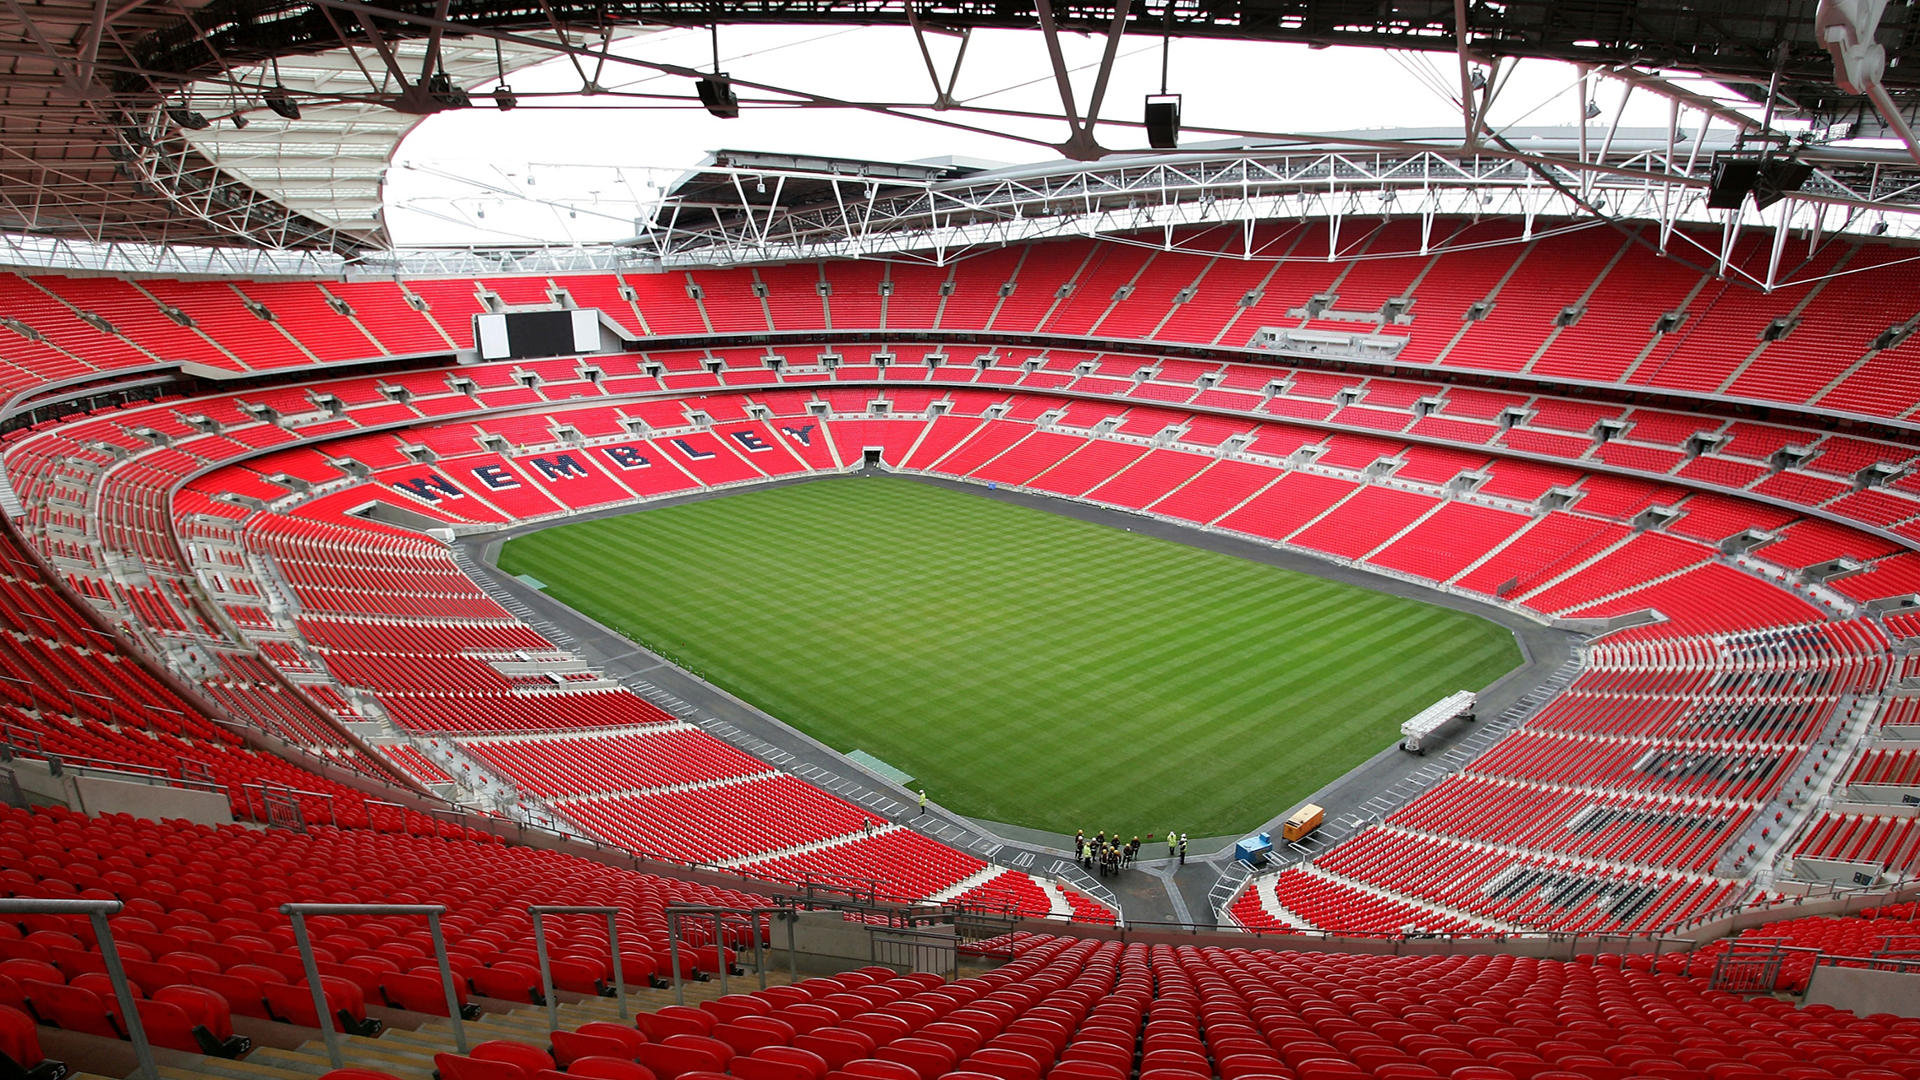 Wembley Stadium. Virtual background to use on Zoom, Microsoft Teams, Skype, Google Meet, WebEx or any other compatible app.